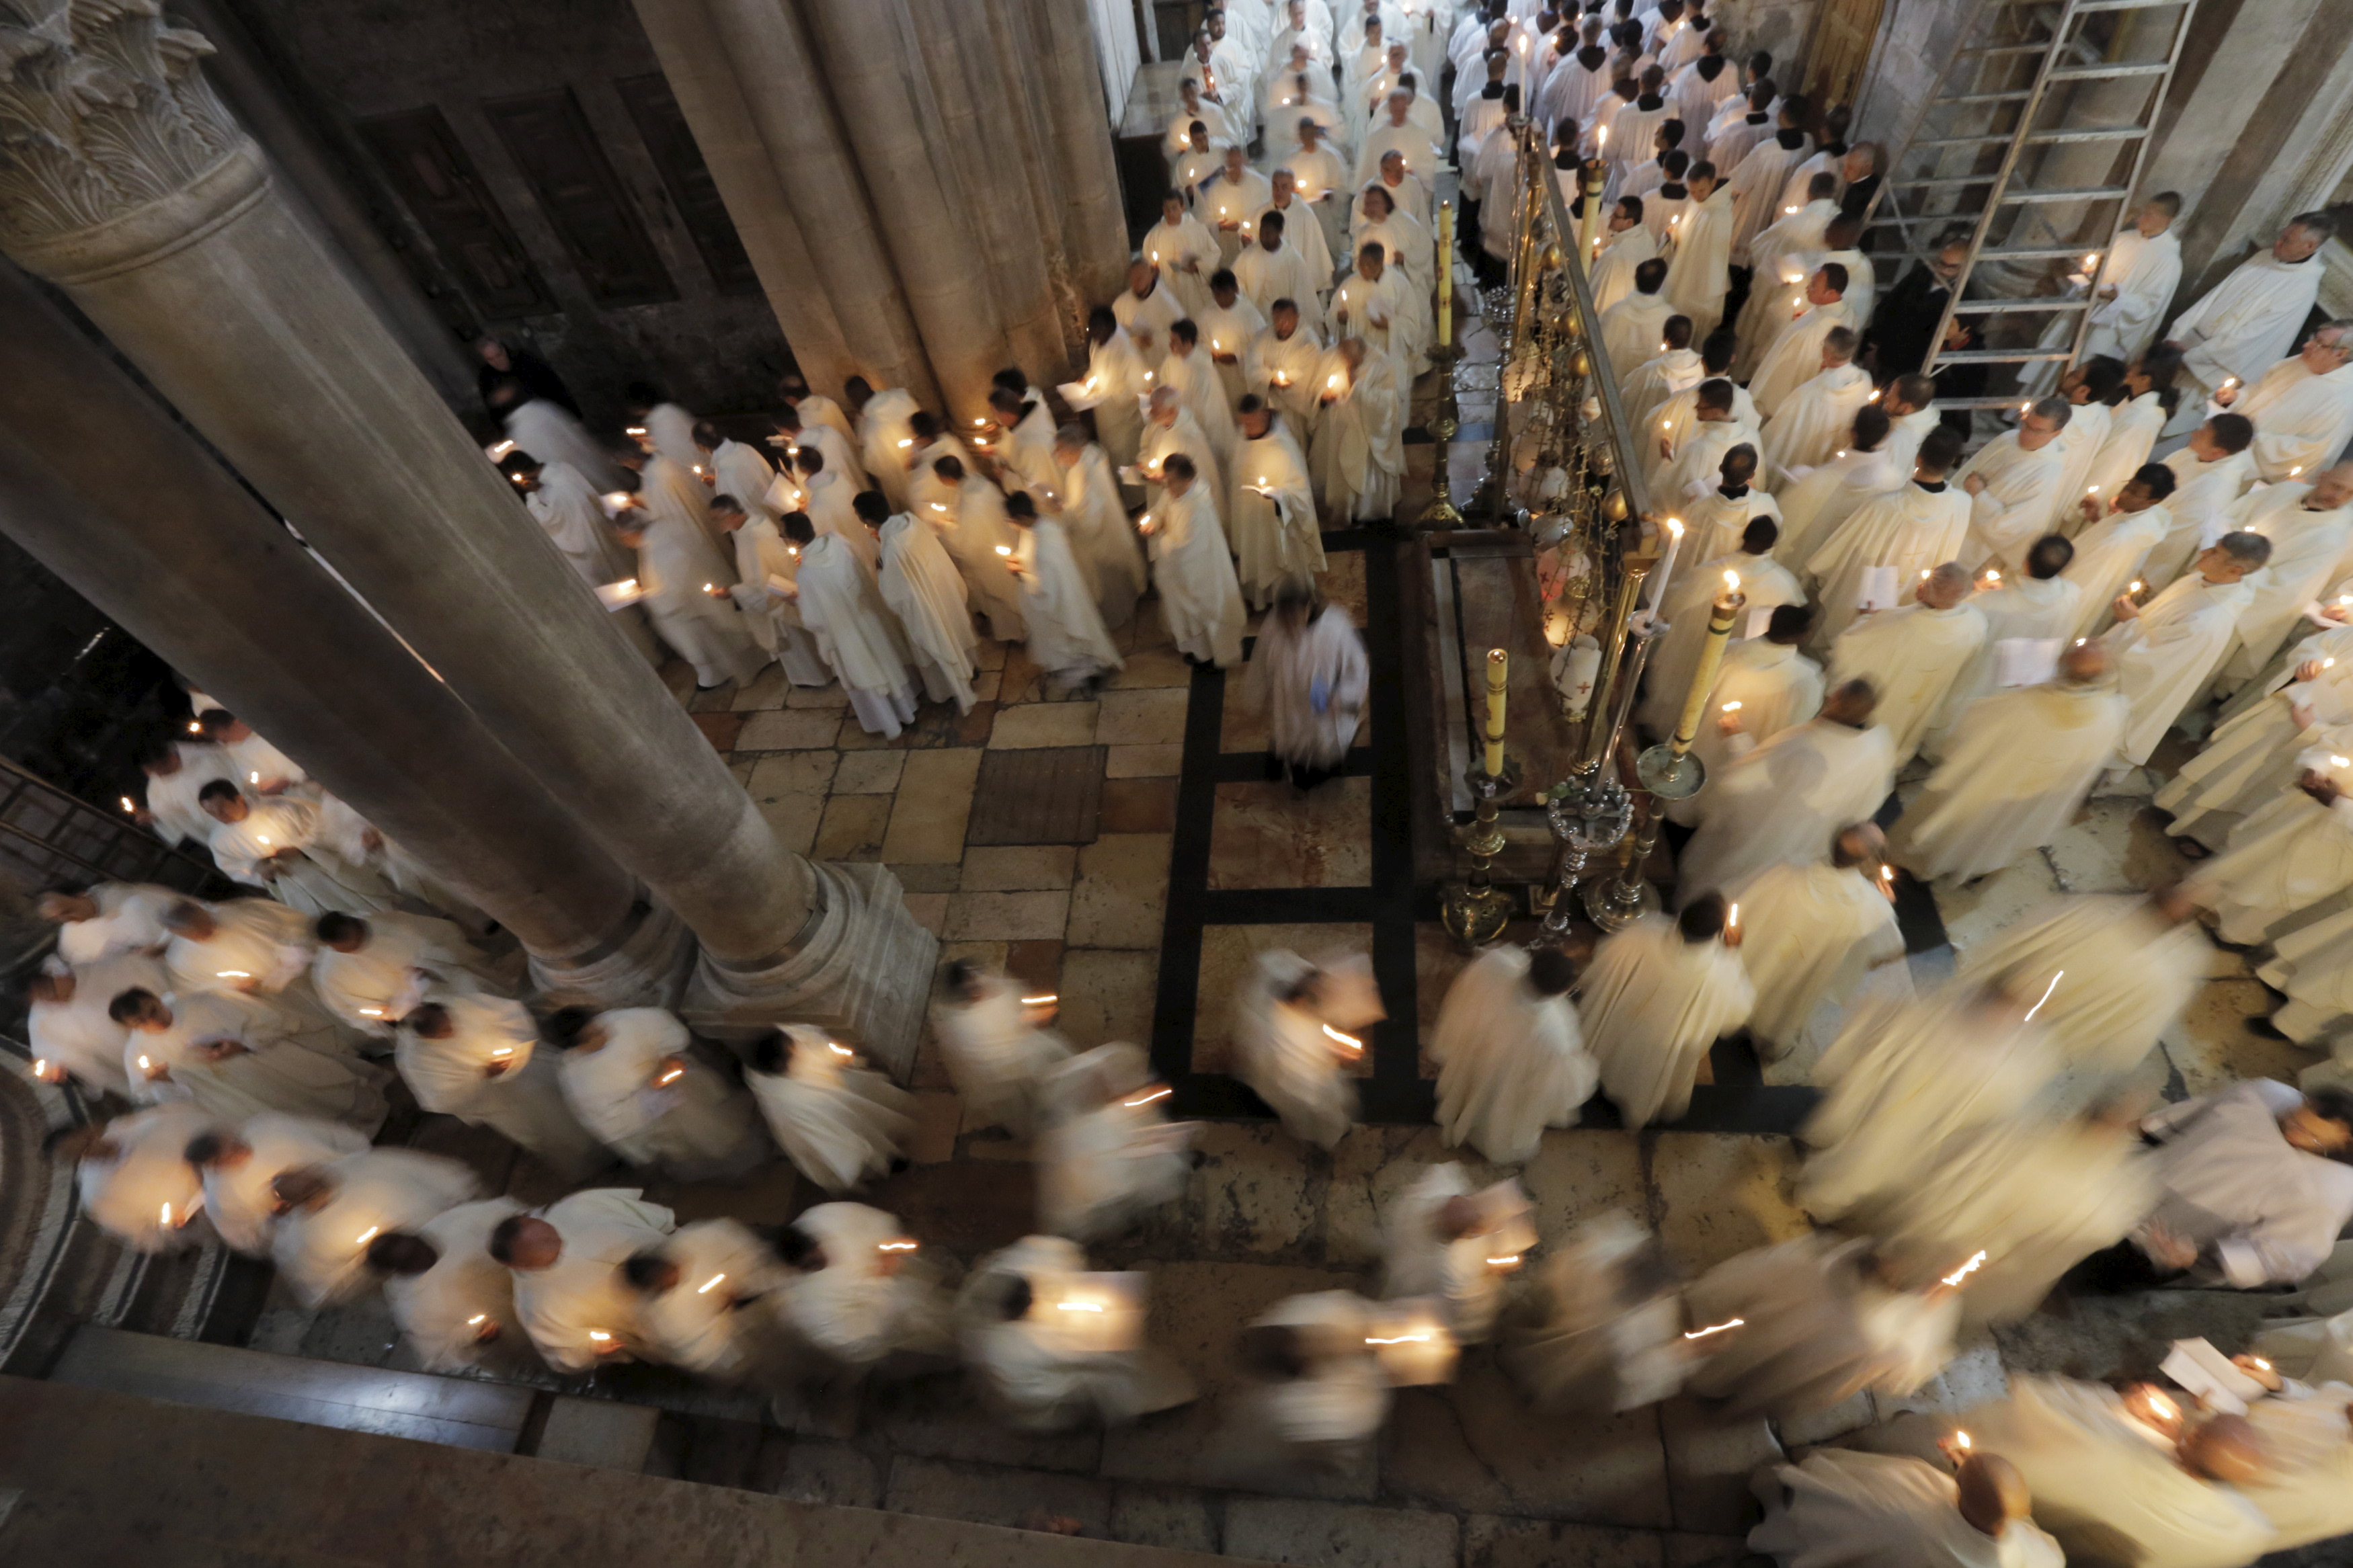 Members of the Catholic clergy hold candles during a procession at the traditional Washing of the Feet ceremony at the Church of the Holy Sepulchre in Jerusalem's Old City during Holy Week April 2, 2015. Holy Week is celebrated in many Christian traditions during the week before Easter. REUTERS/Ammar Awad